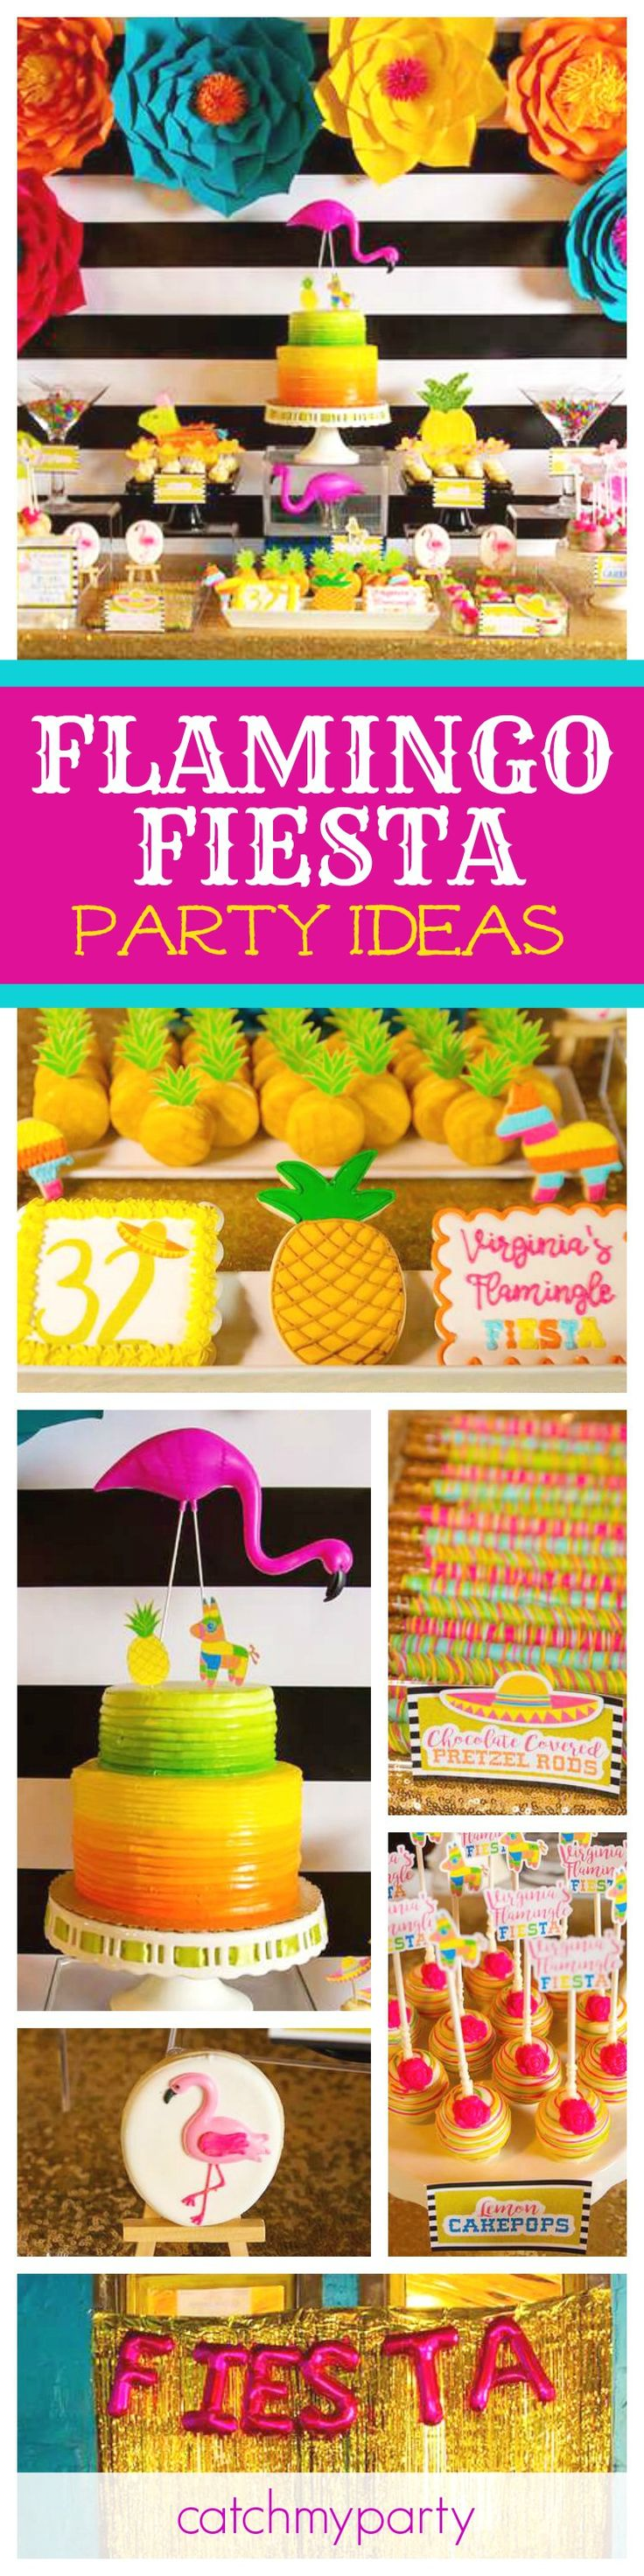 Mexican fiesta party decorating ideas hosting guide - Flamingos Birthday Flamingo Fiesta